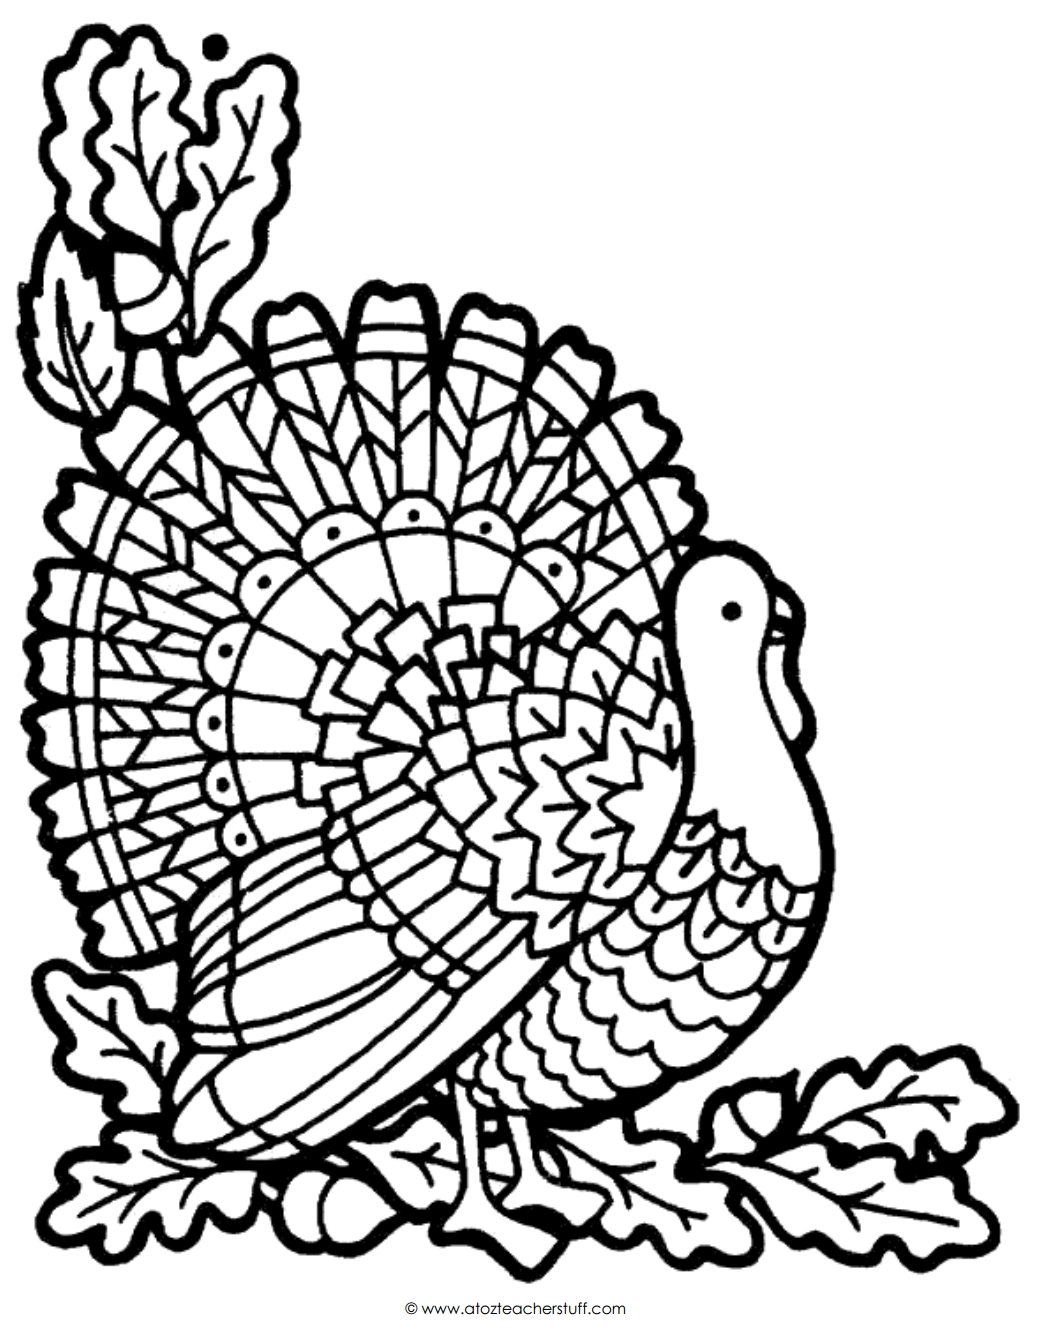 photograph regarding Printable Turkey referred to as Turkey Coloring Website page A toward Z Trainer Things Printable Internet pages